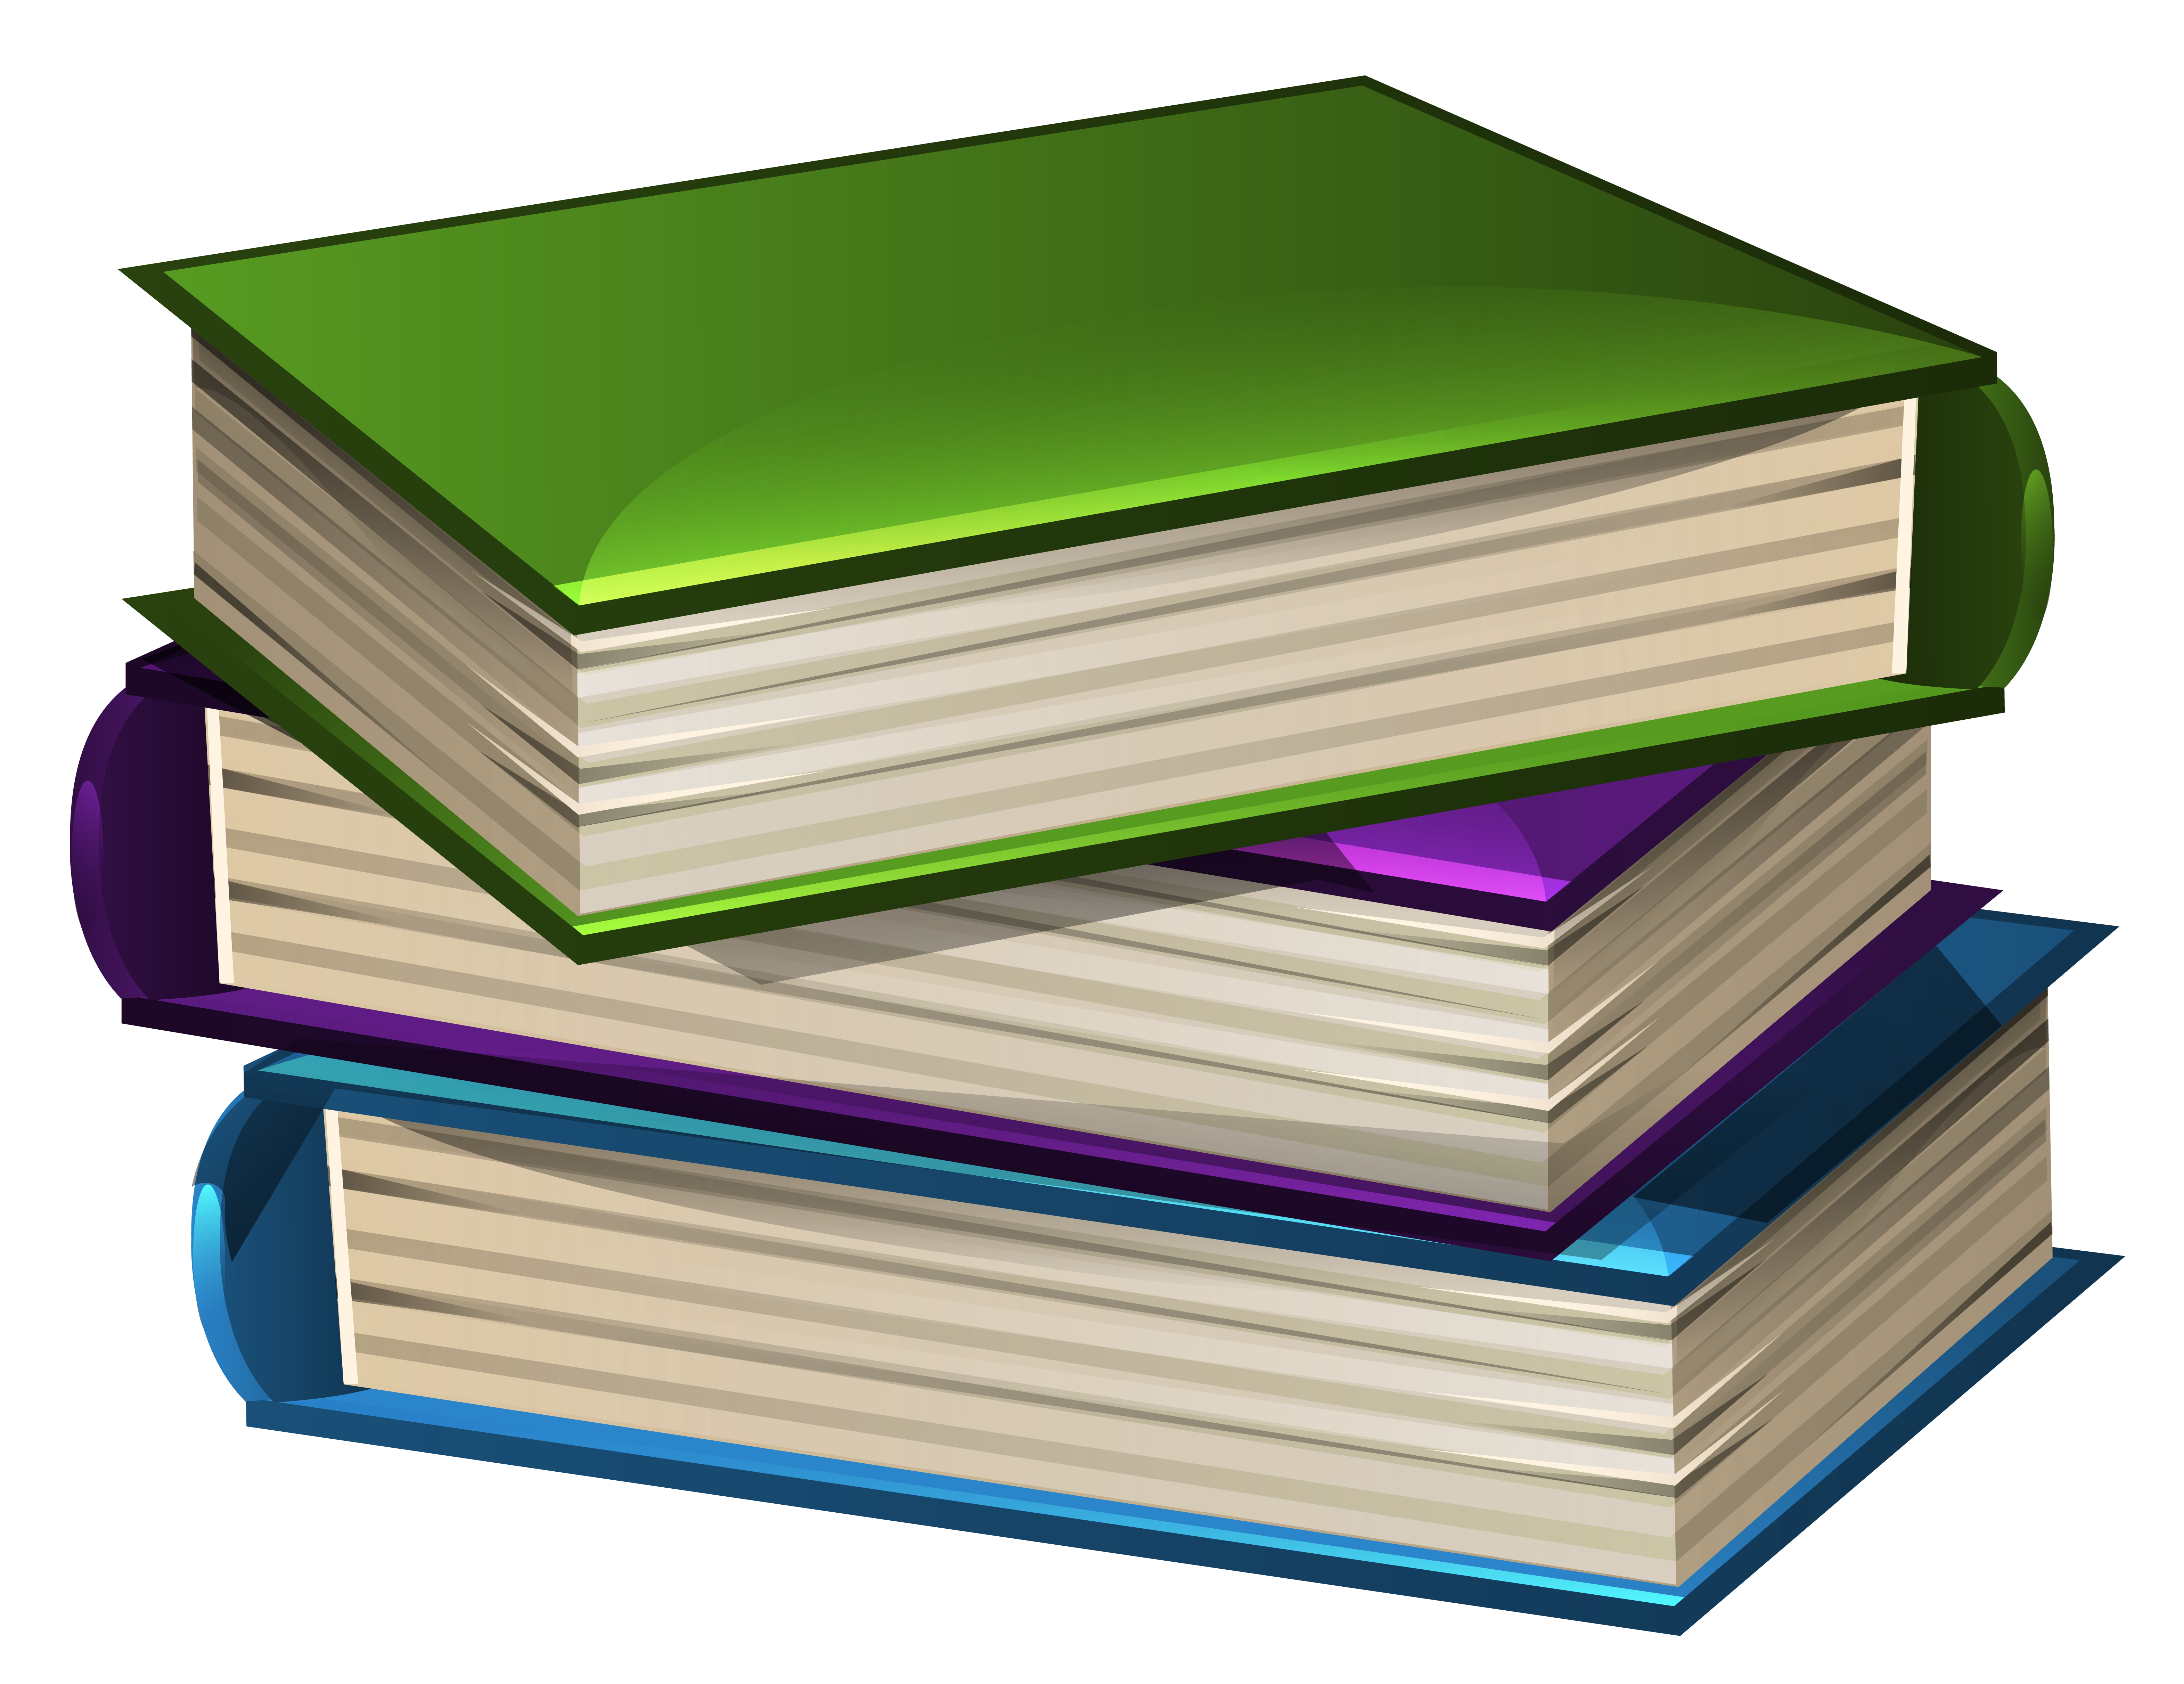 Book image png. Books gallery yopriceville high